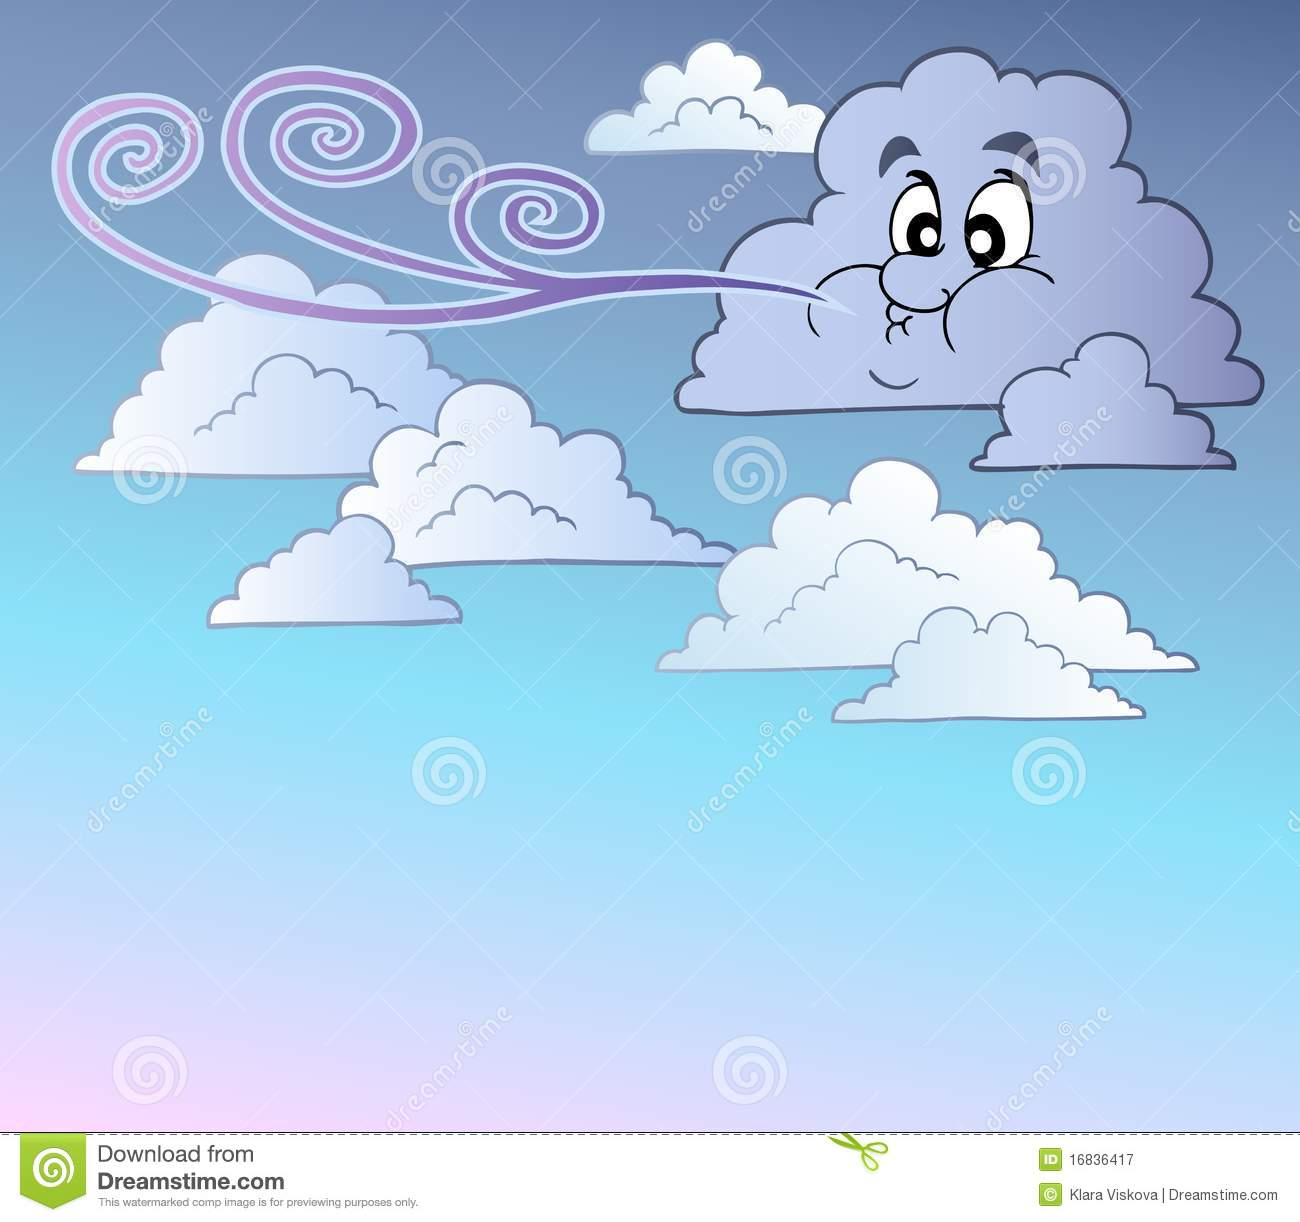 Windy Sky With Cartoon Clouds Royalty Free Stock Photography - Image ...